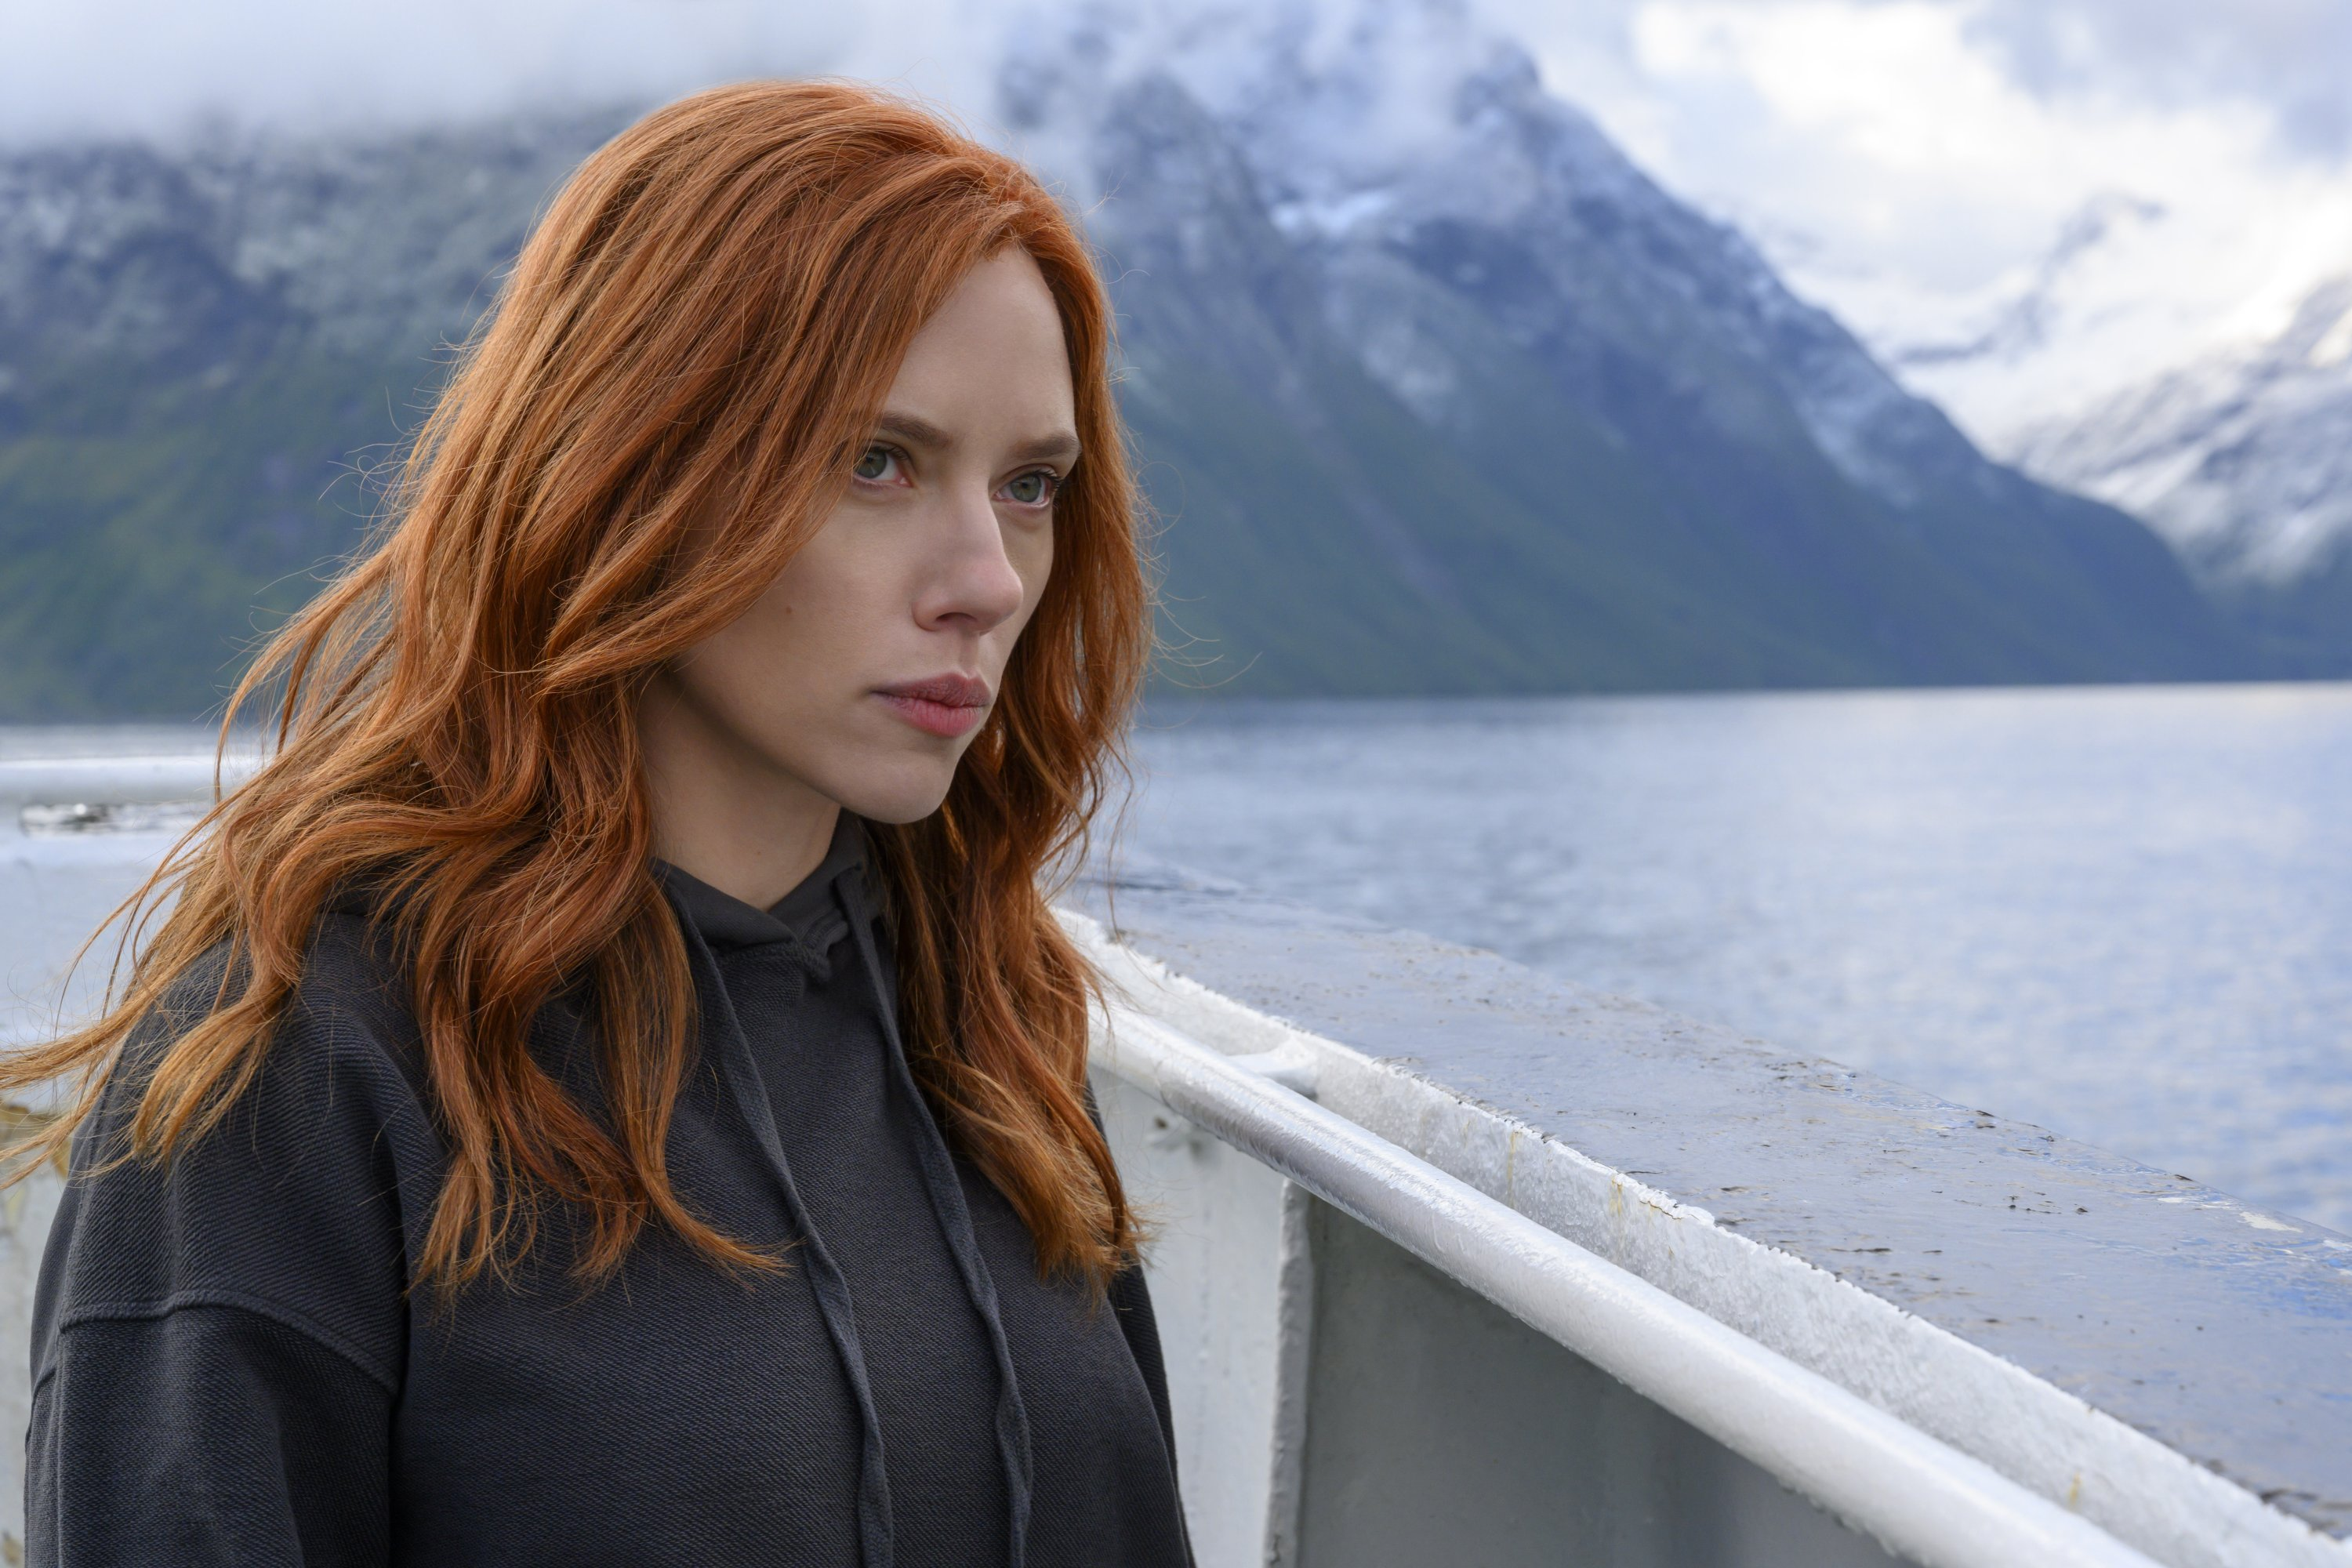 Marvel's 'Black Widow': A welcome, satisfying spin-off   Daily Sabah